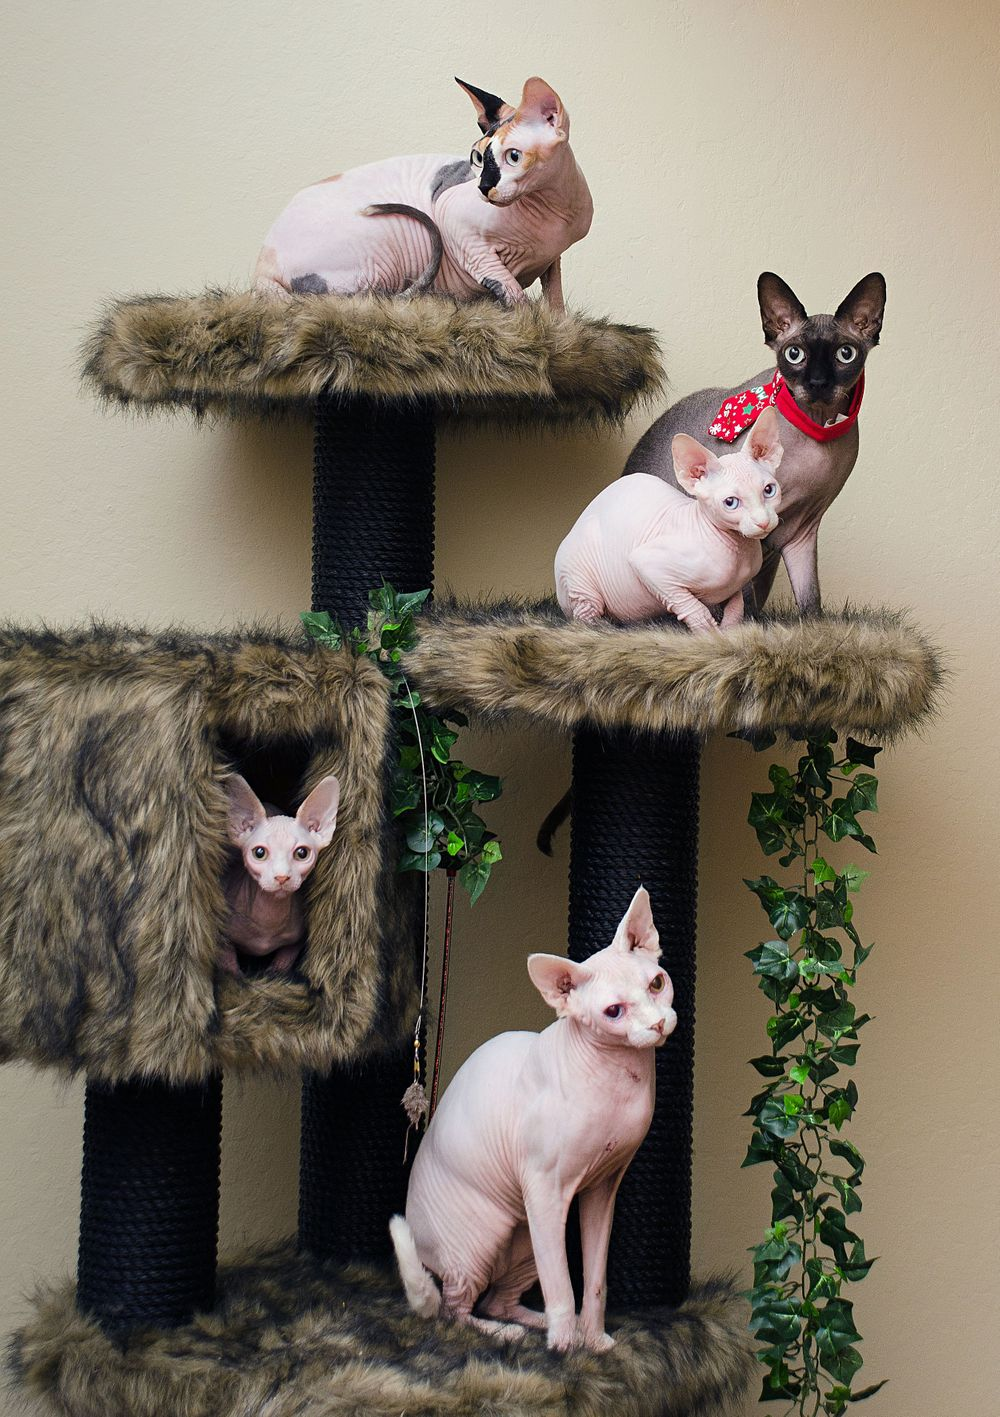 hairless sphynx cats on cat tower with leaves